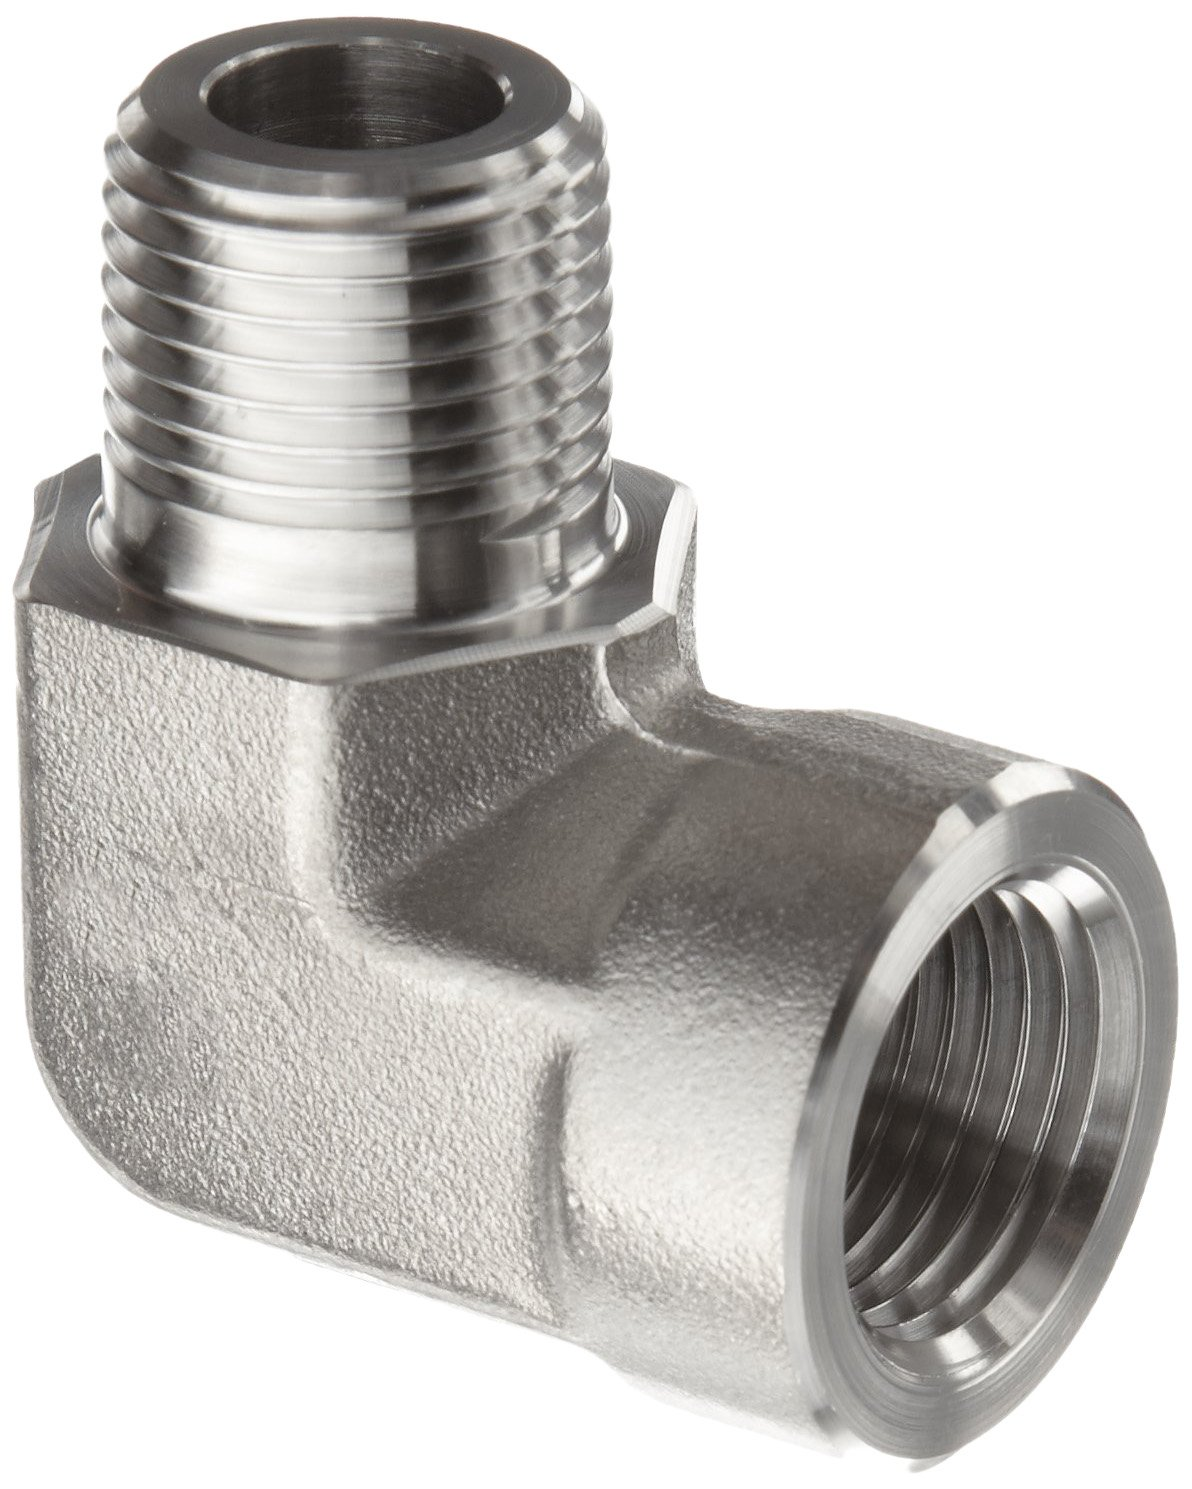 Parker Stainless Steel 316 Pipe Fitting, 90 Degree Street Elbow, 1/8'' NPT Male X 1/8'' NPT Female